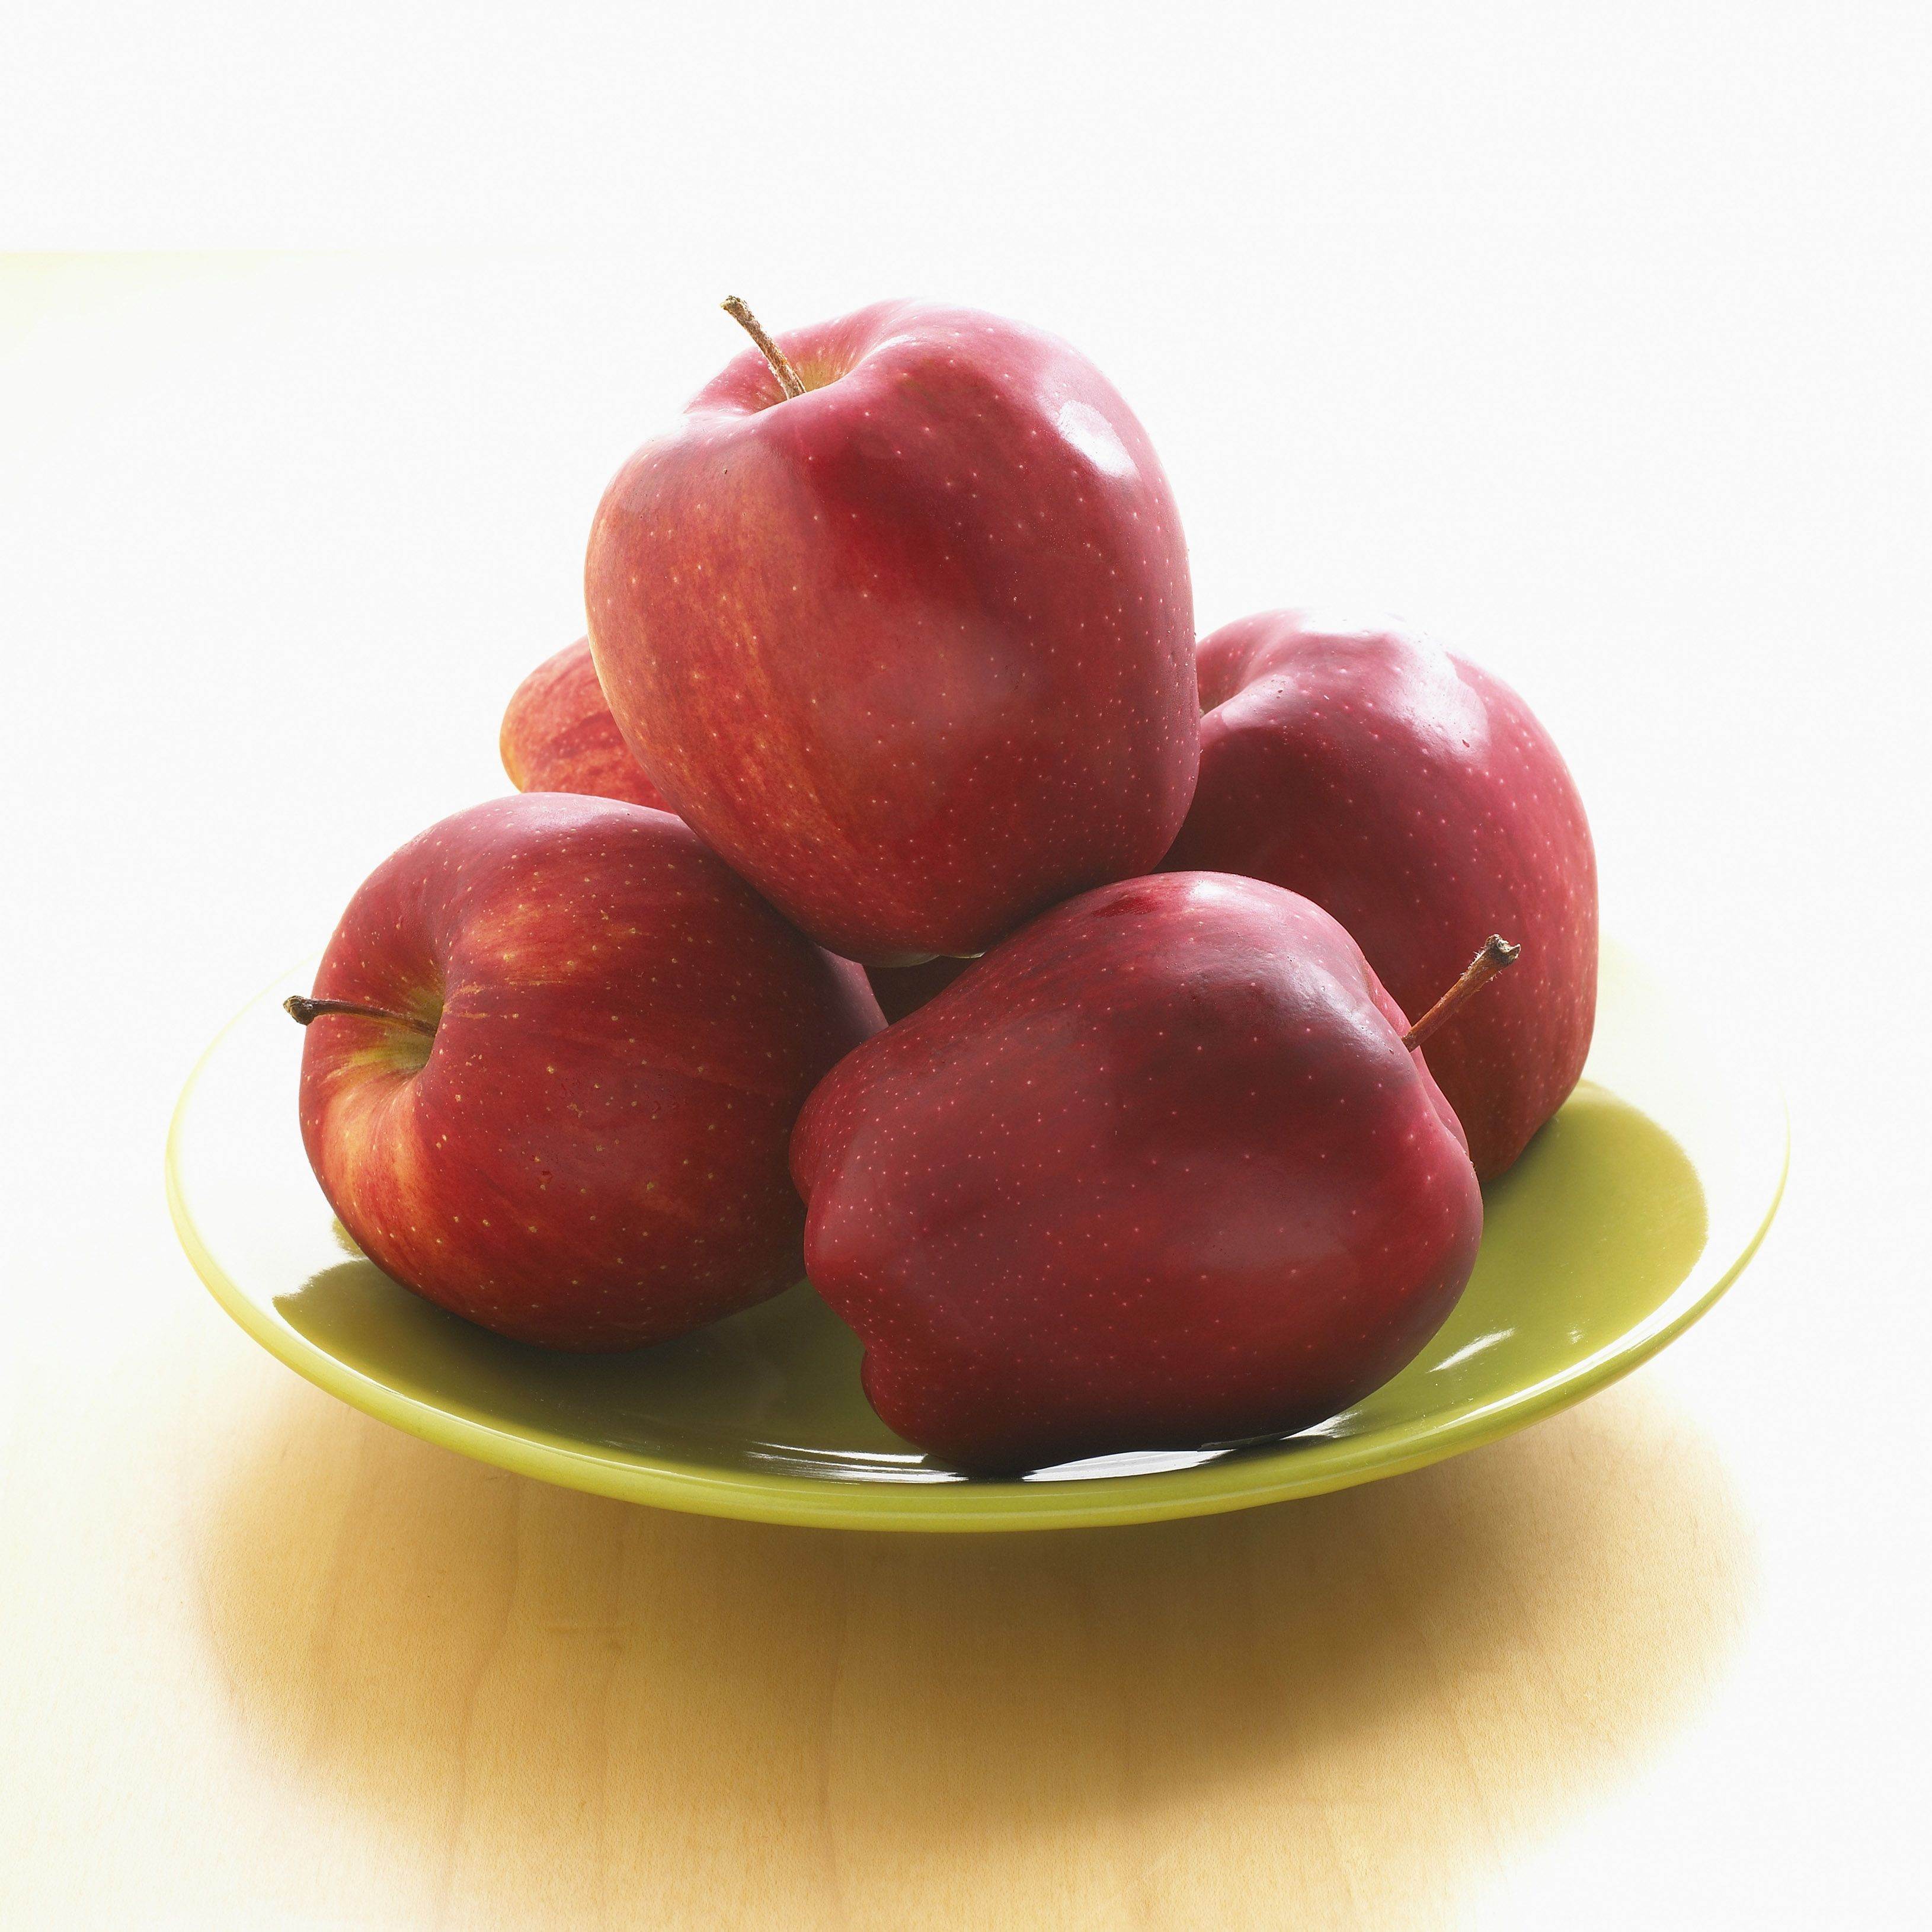 The Top 10 Heart Healthy Foods - You want to keep your heart healthy? The best way to do this is by...